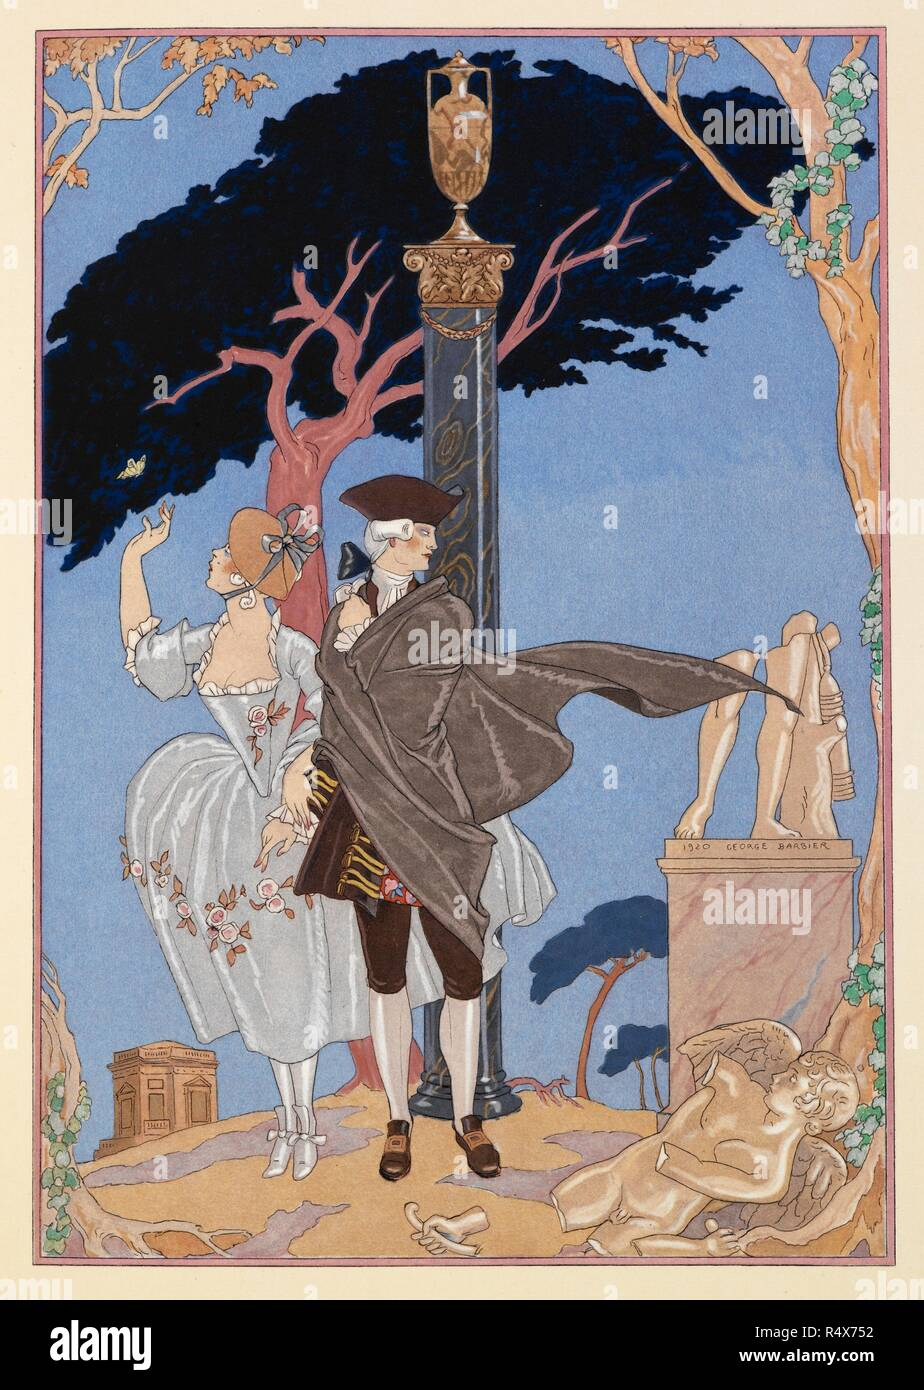 L'Amour Par Terre. A man and woman out walking among ruins. Fêtes galantes. [Poèmes]. Illustrations de George Barbier. Paris: H. Piazza, 1928. Fêtes Galantes is an album consisting of romantic prints of French life among the upper classes of the 19th century. Rich aristocrats of the French court used to play gallant scenes from the commedia dell' arte that were called Fetes Galantes. The prints accompany Paul Verlaine's poetry. Each album contains 20 lithograph prints with pochoir highlighting by George Barbier. Source: L.45/2847, before page 87. Language: French. - Stock Image